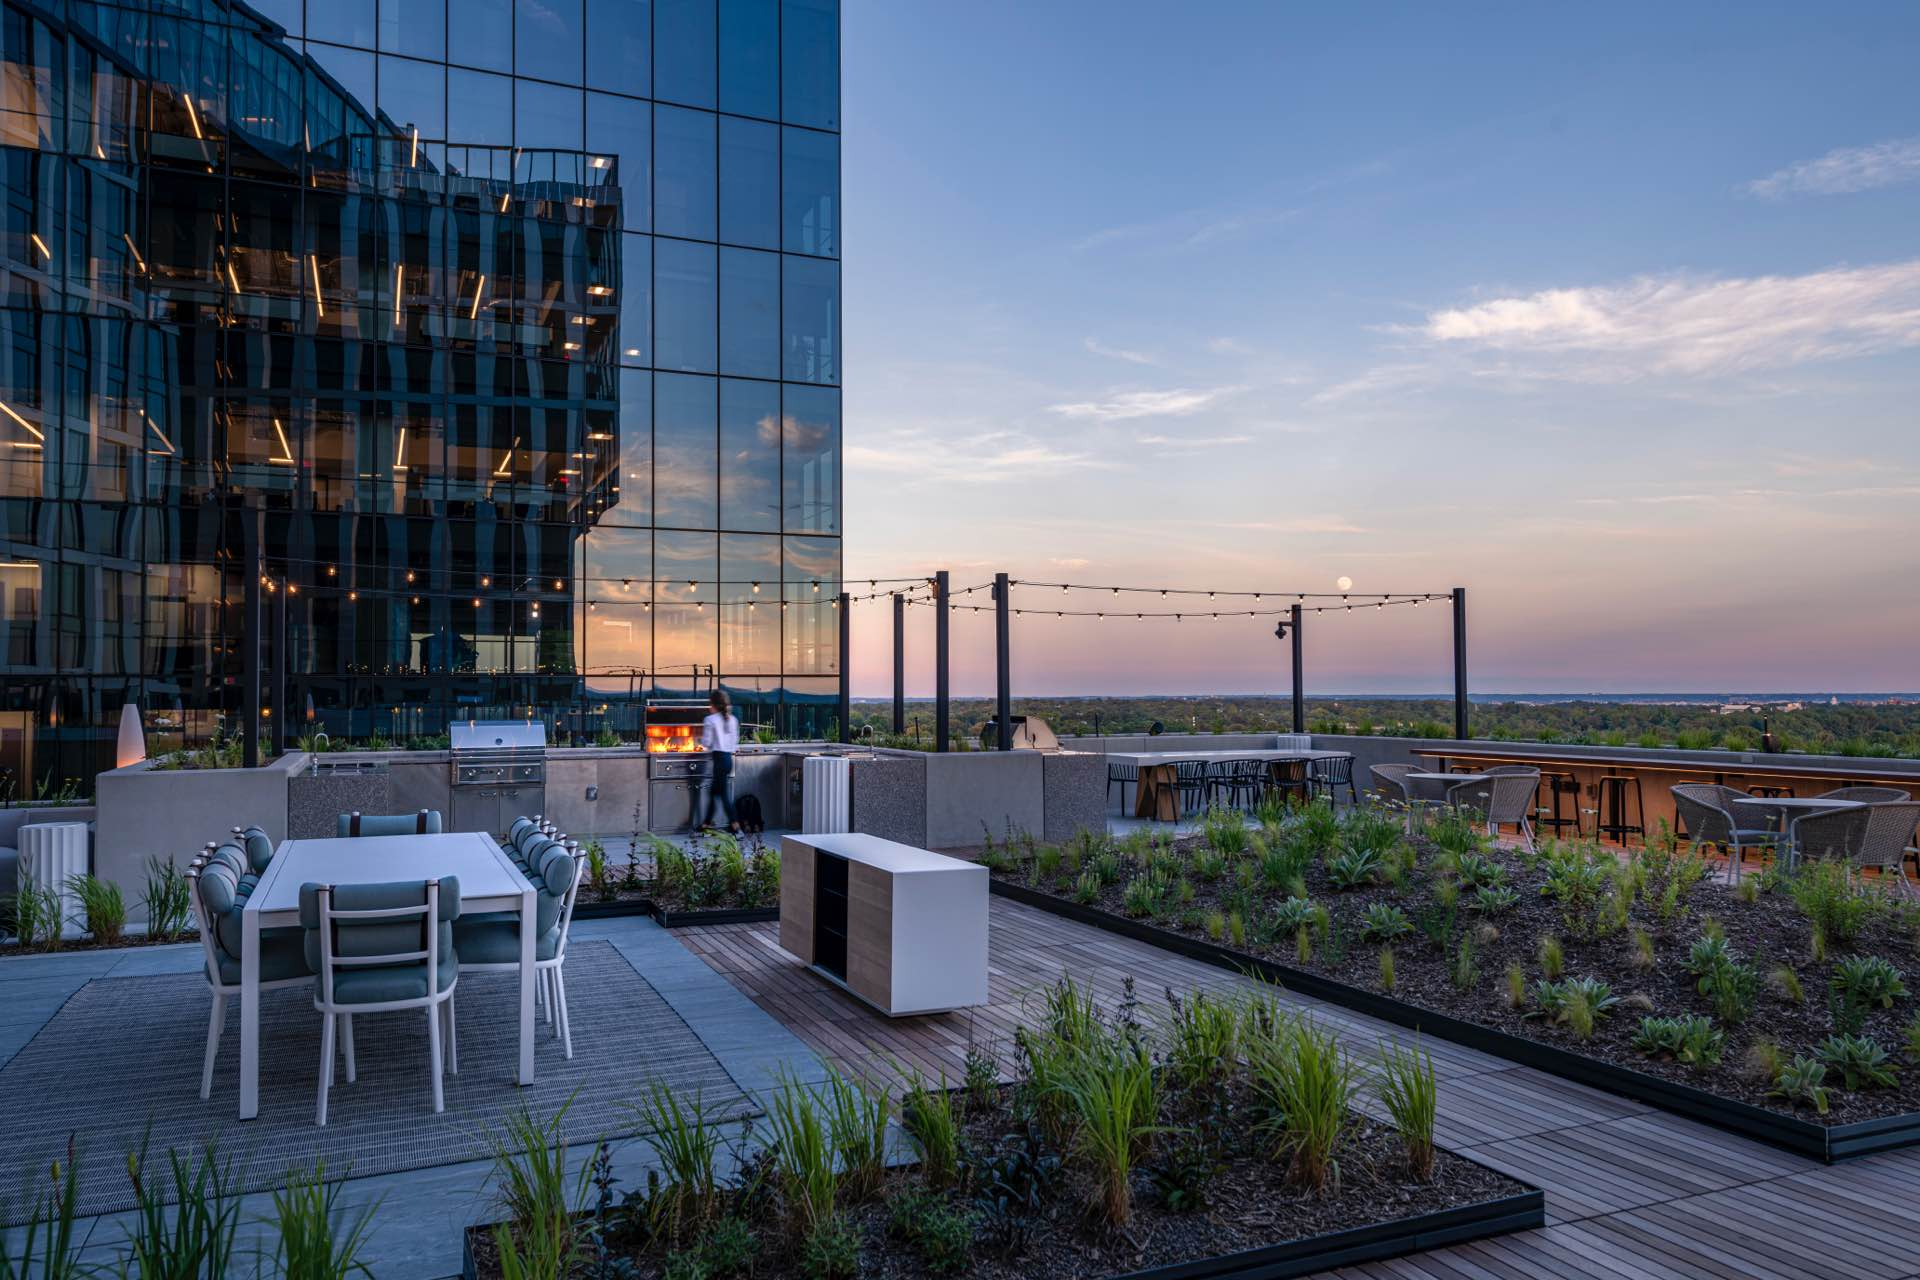 From cooking classes to cocktails in the 17th-floor courtyard, leisure time at The Elm is designed to nourish your sense of self.